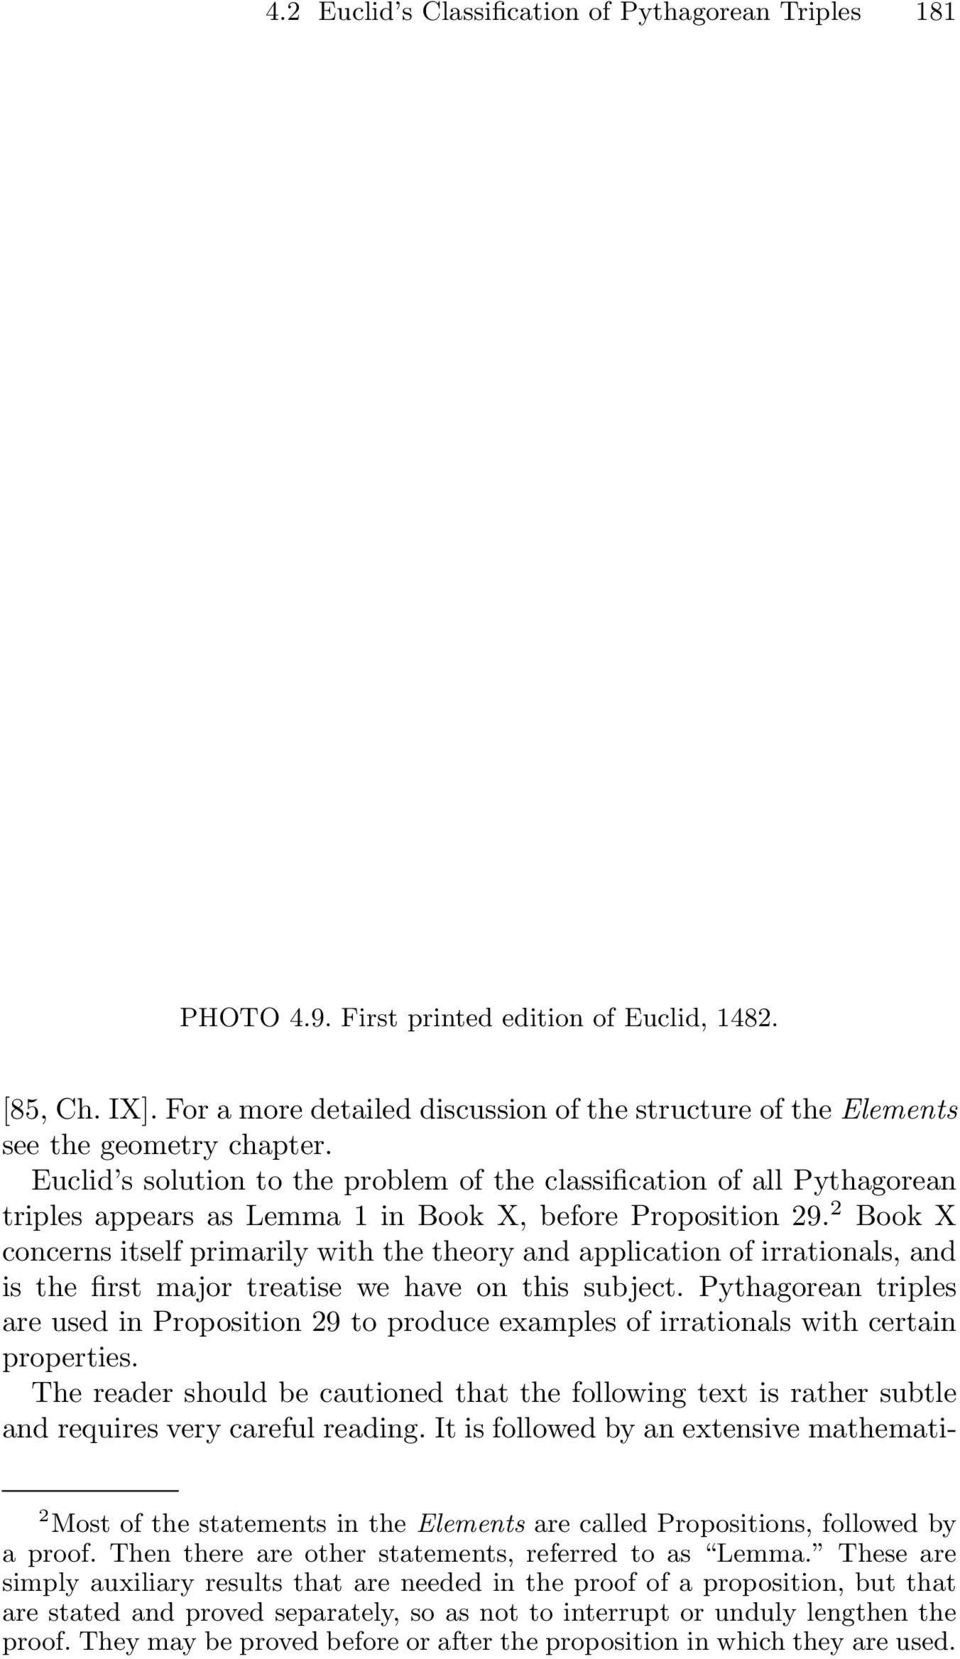 Euclid s solution to the problem of the classification of all Pythagorean triples appears as Lemma 1 in Book X, before Proposition 29.